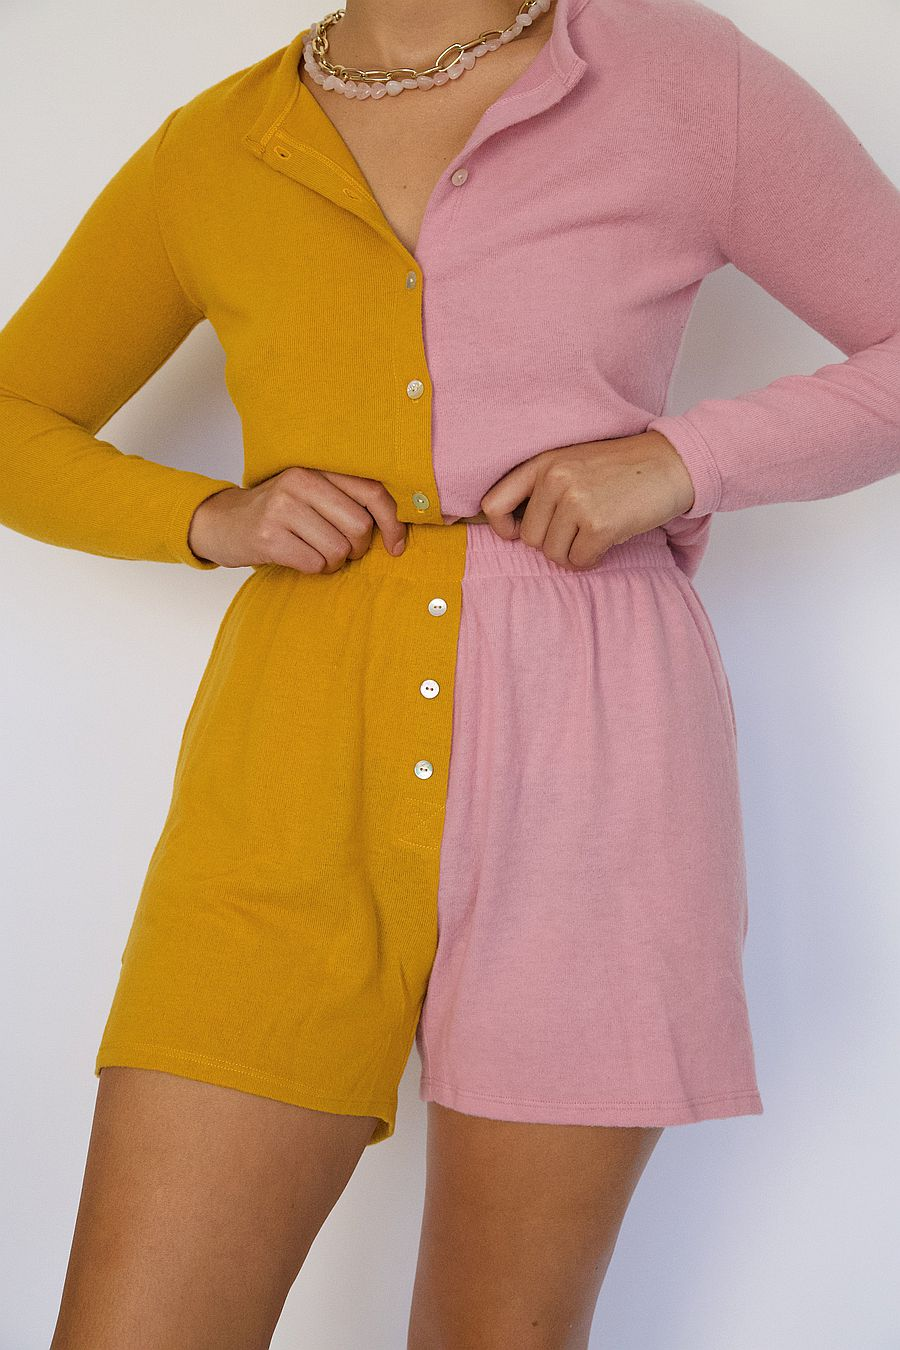 DONNI. Duo Sweater Henley Short - Mustard/Rose